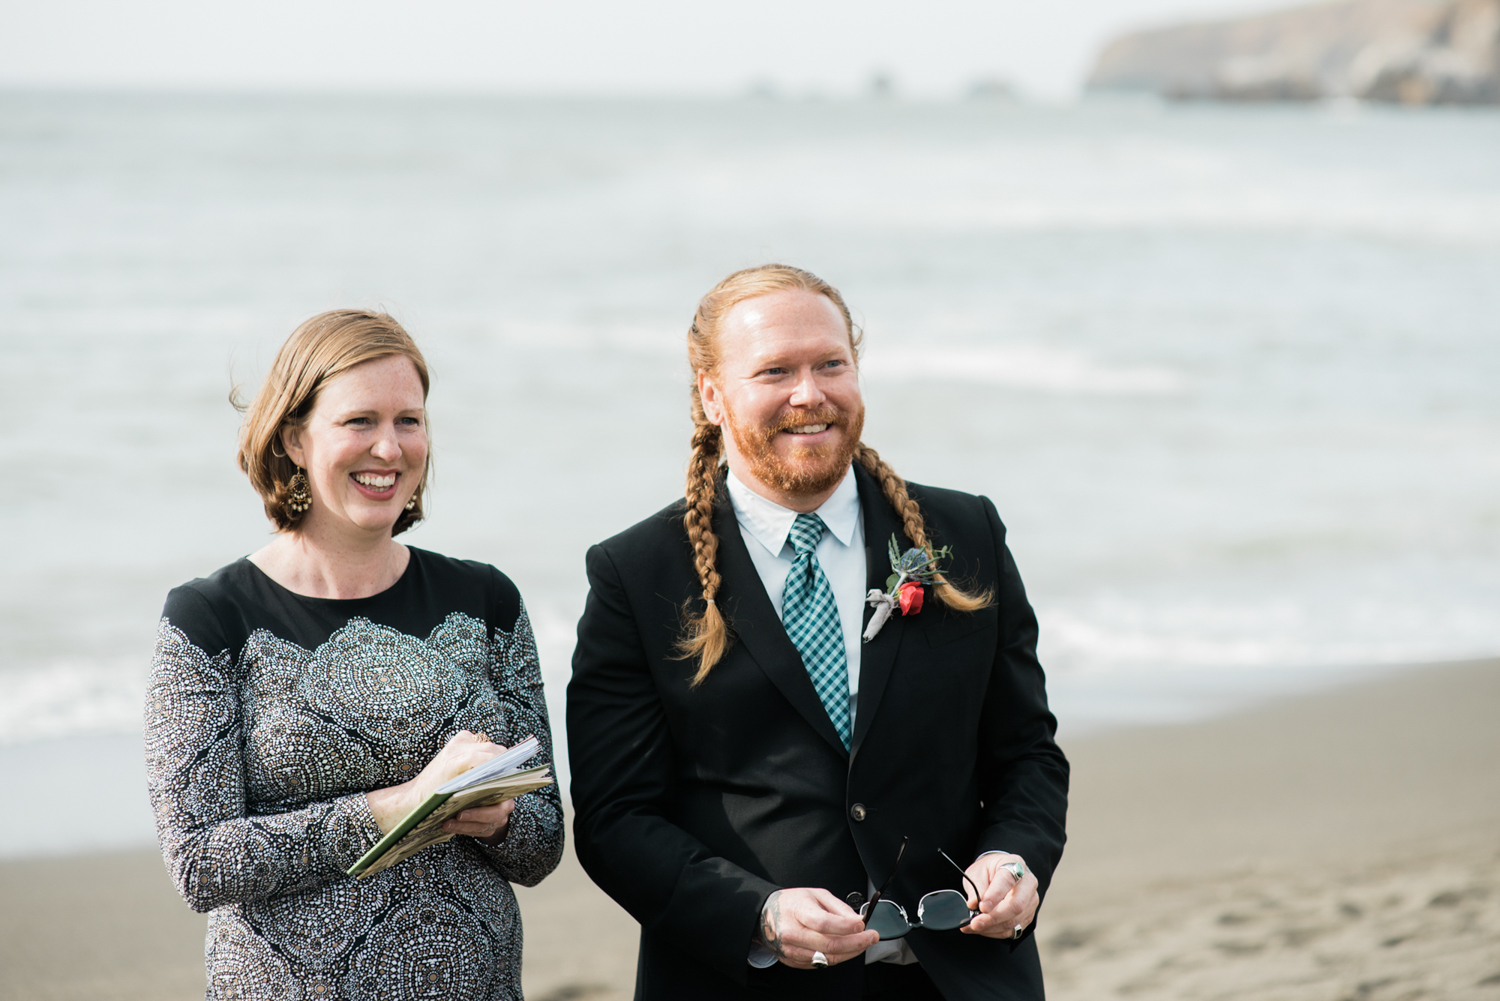 Pacifica_Beach_Surfer_Wedding_100.jpg